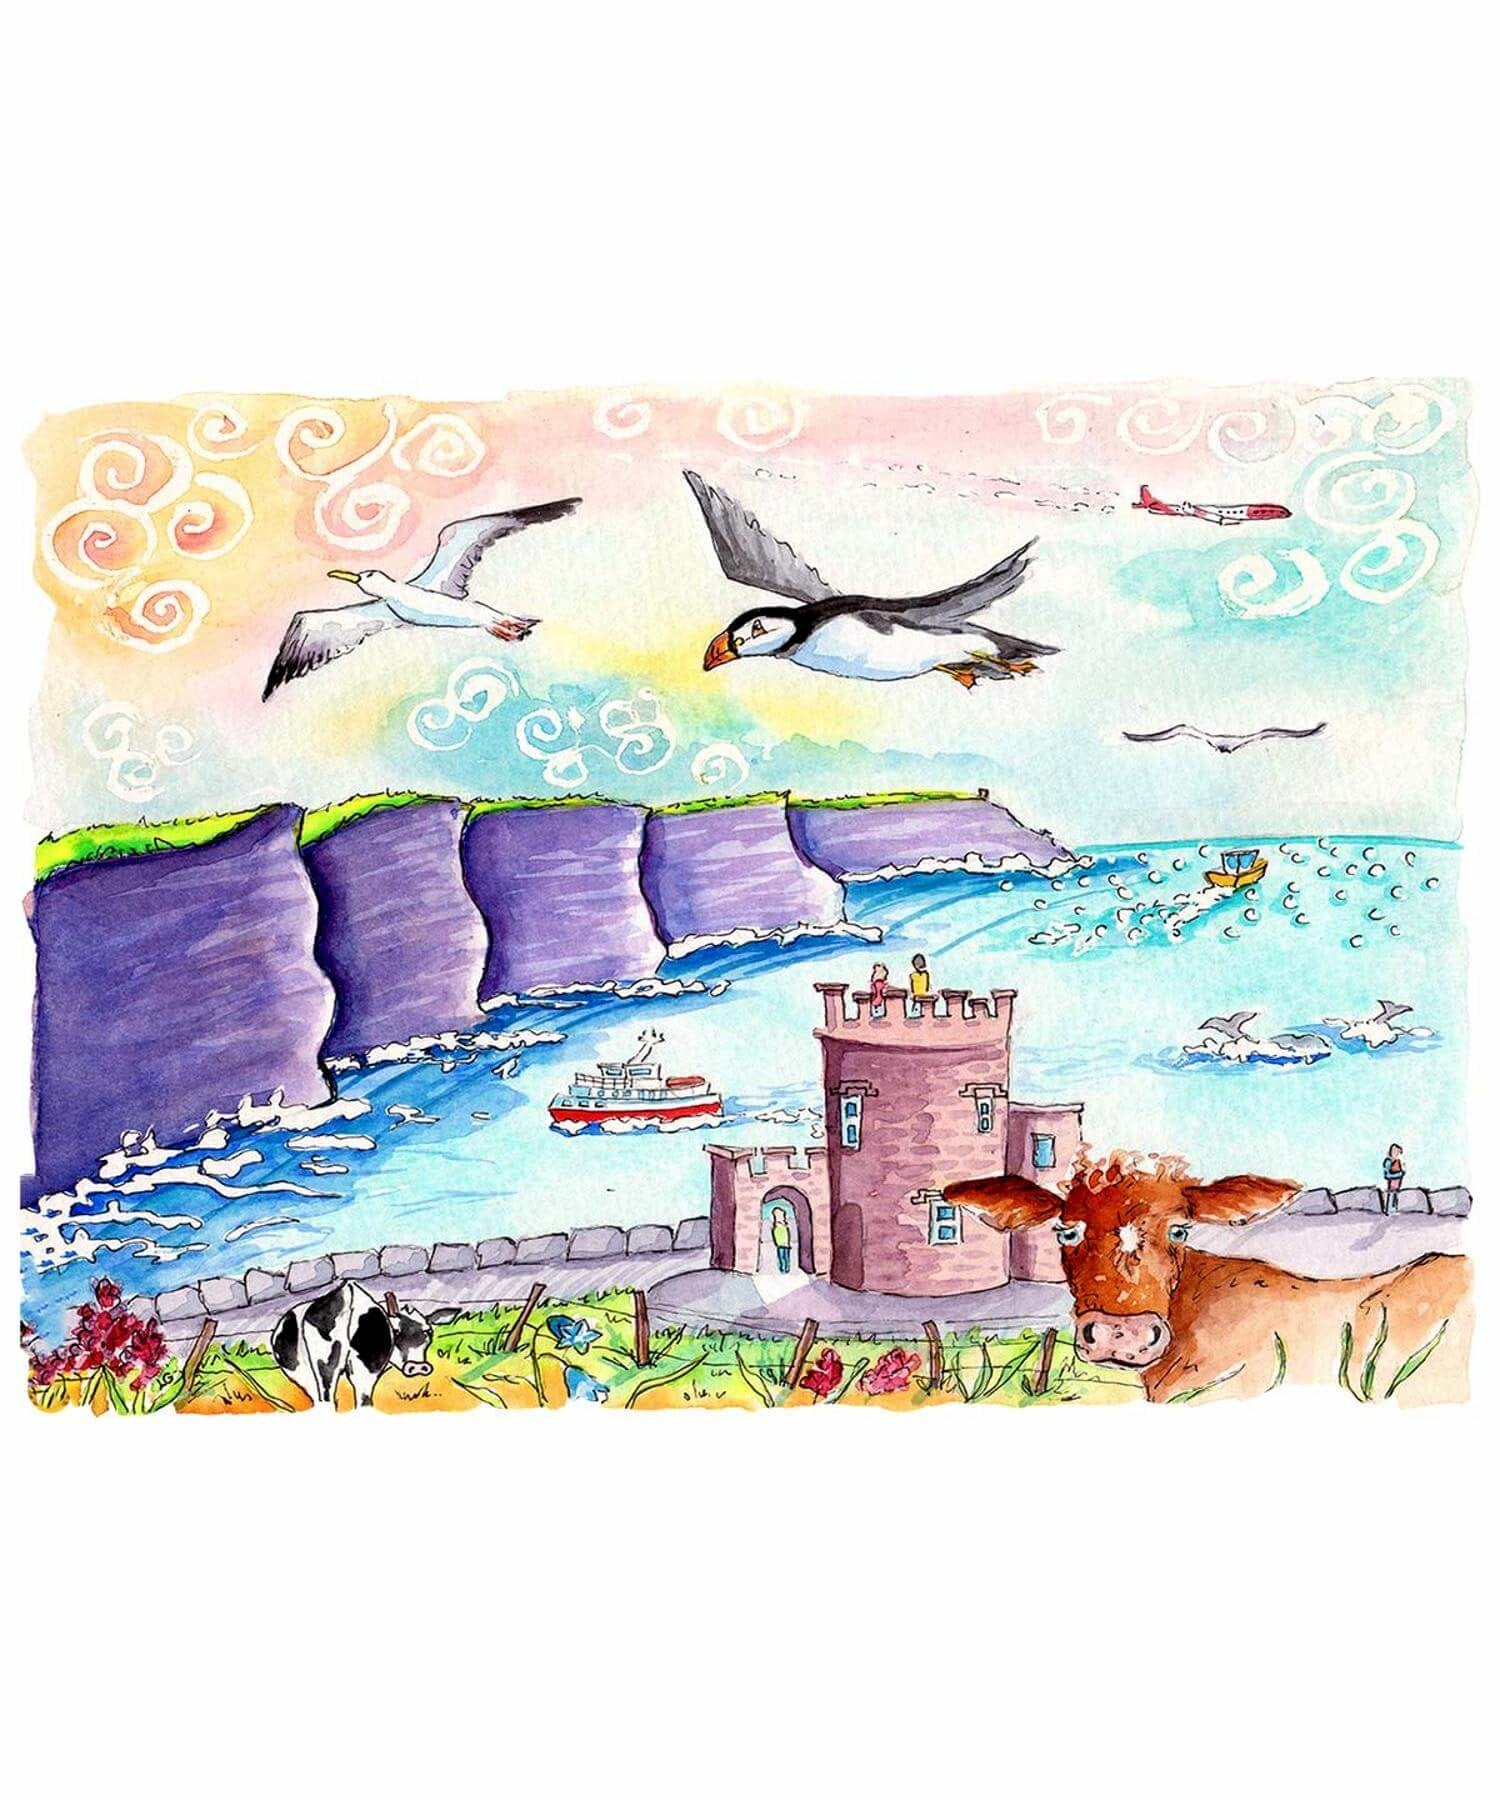 Busy Morning at The Cliffs - [Lani's Art] - Wall Art & Photography - Irish Gifts